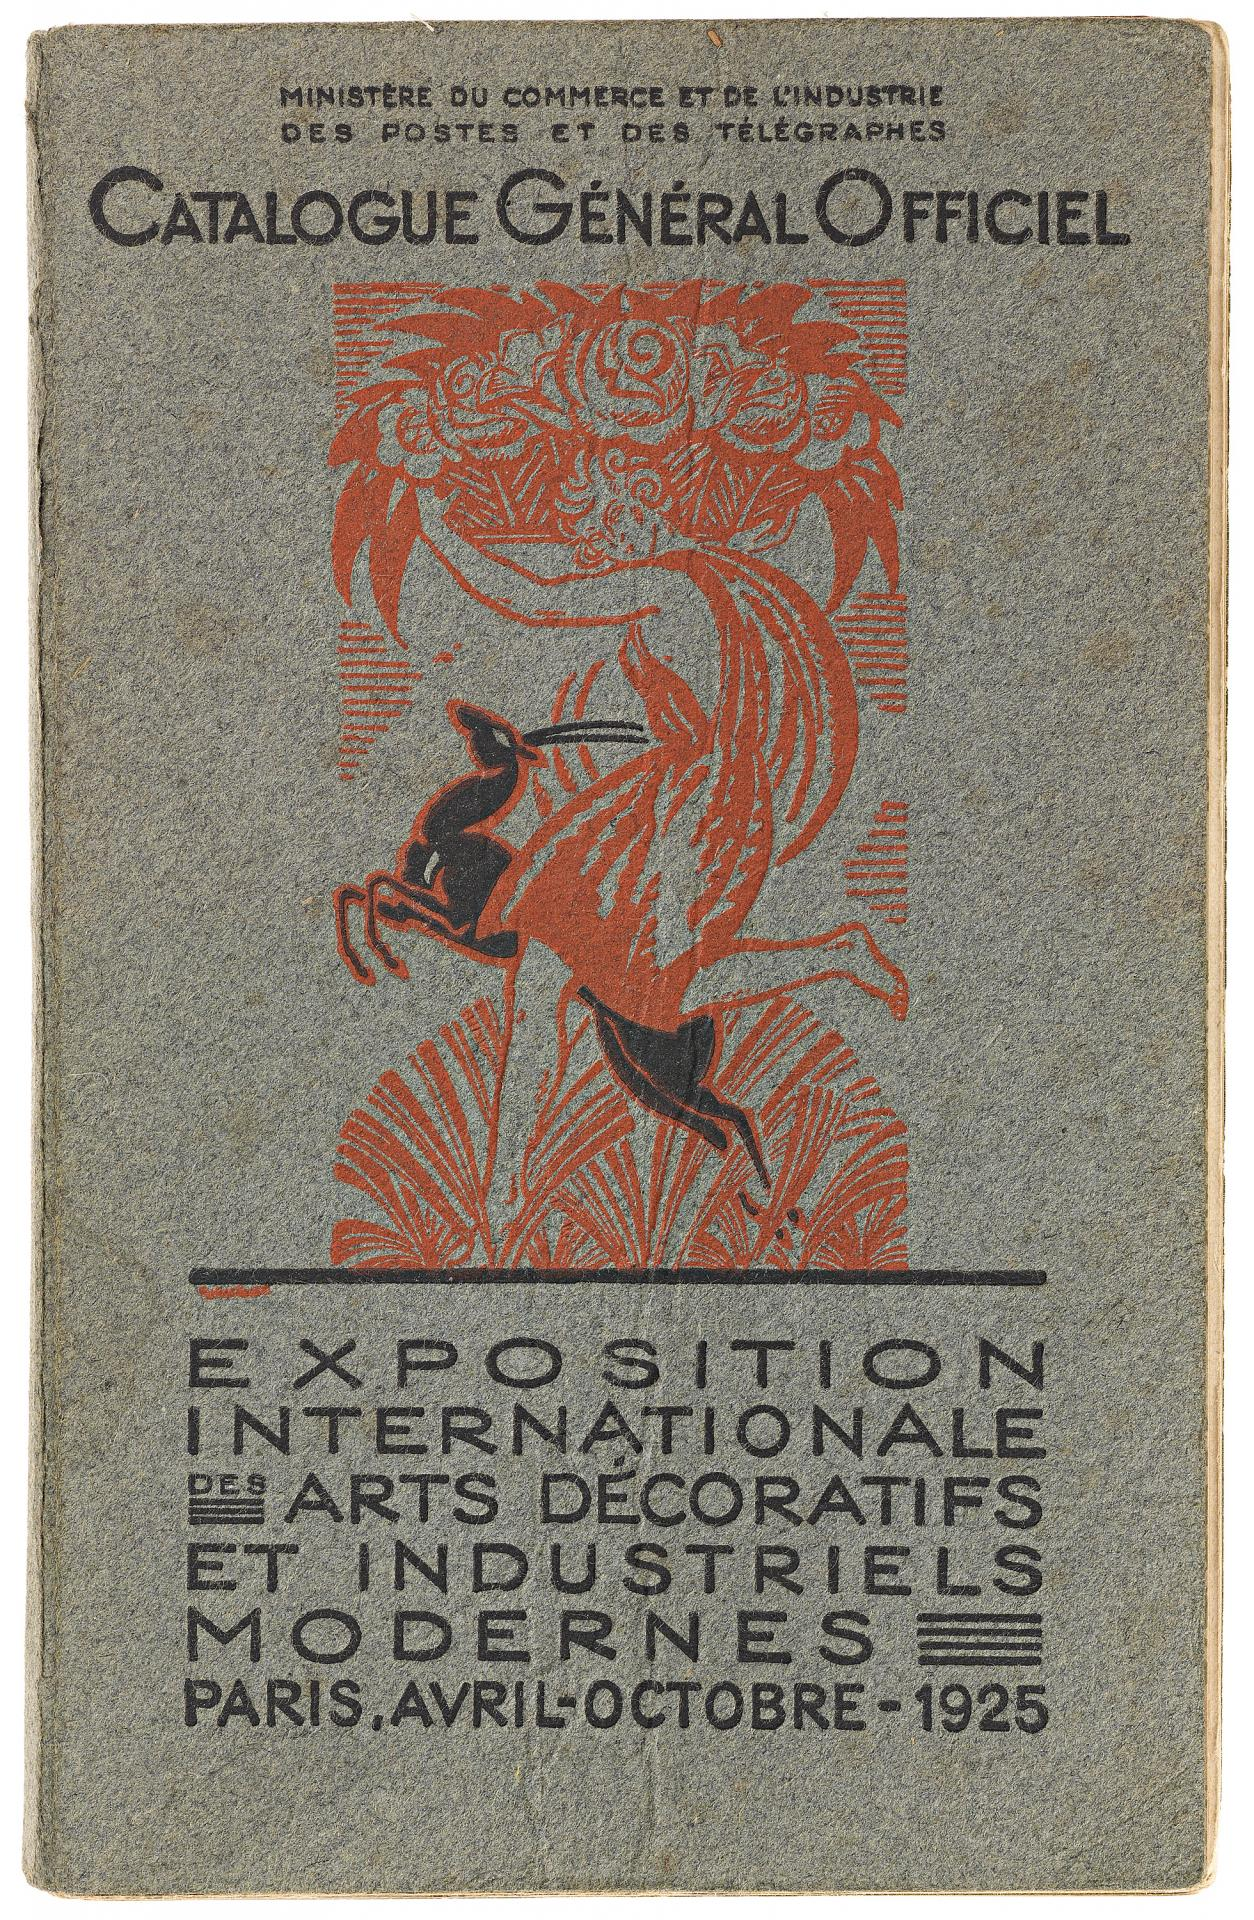 Official general catalogue, International Exposition of Decorative Arts and Modern Industry, Paris, April–October, 1925